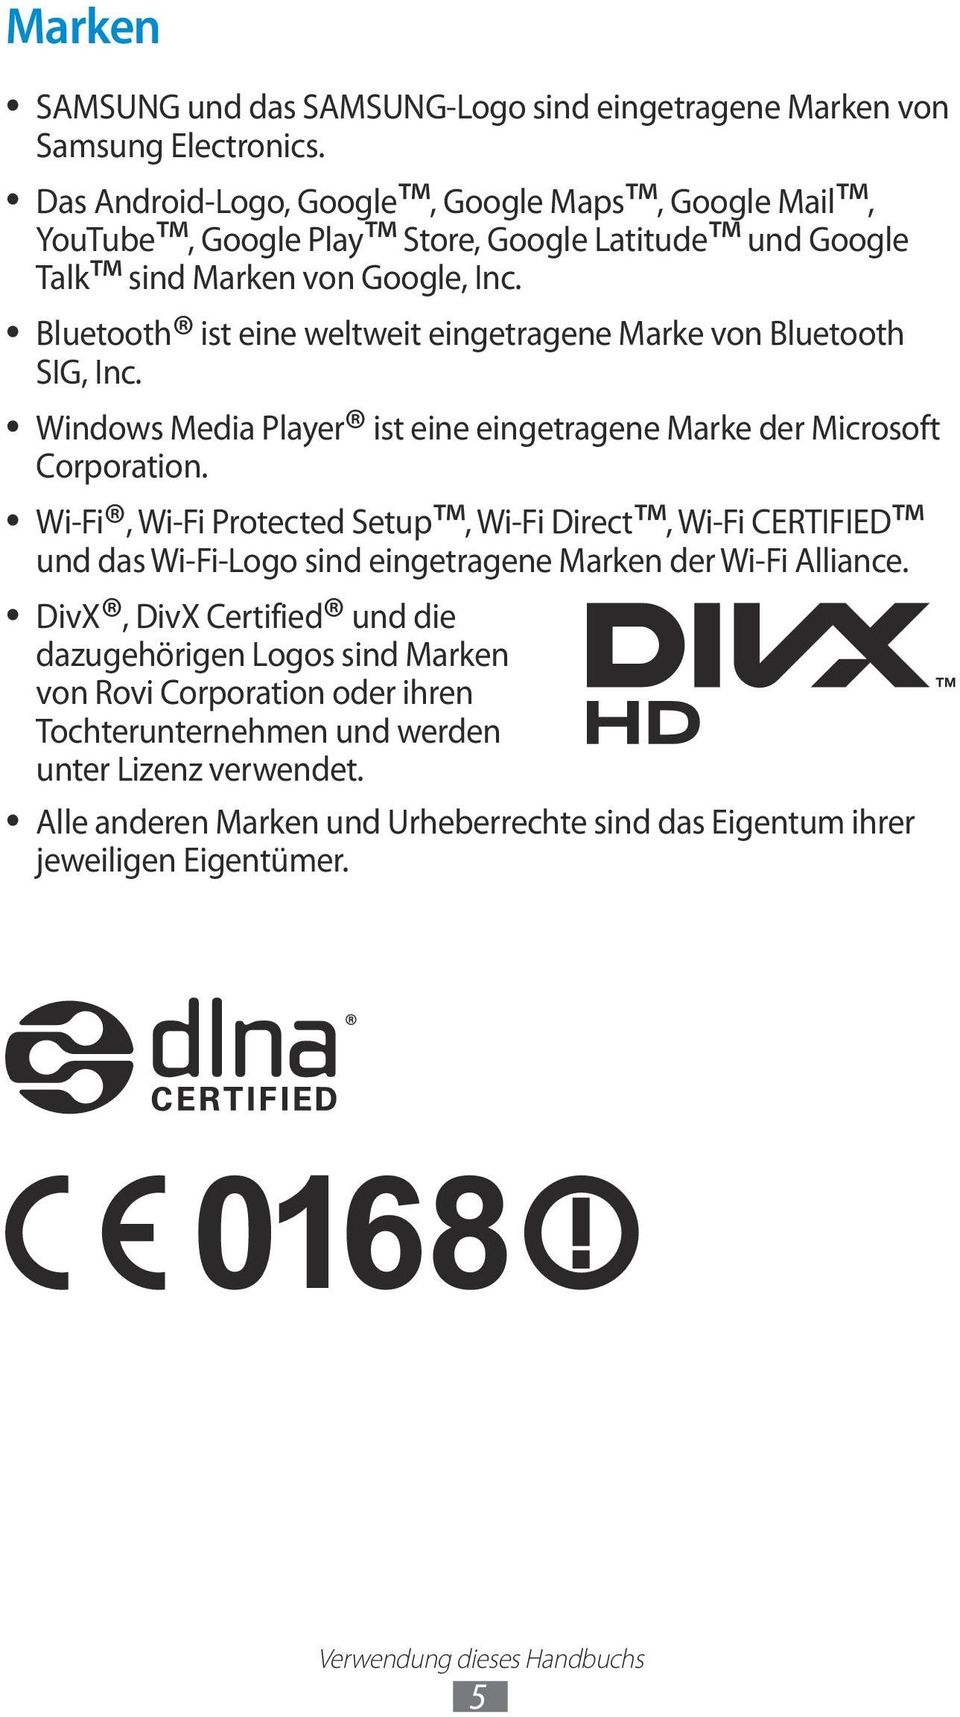 Windows Media Player ist eine eingetragene Marke der Microsoft Corporation.